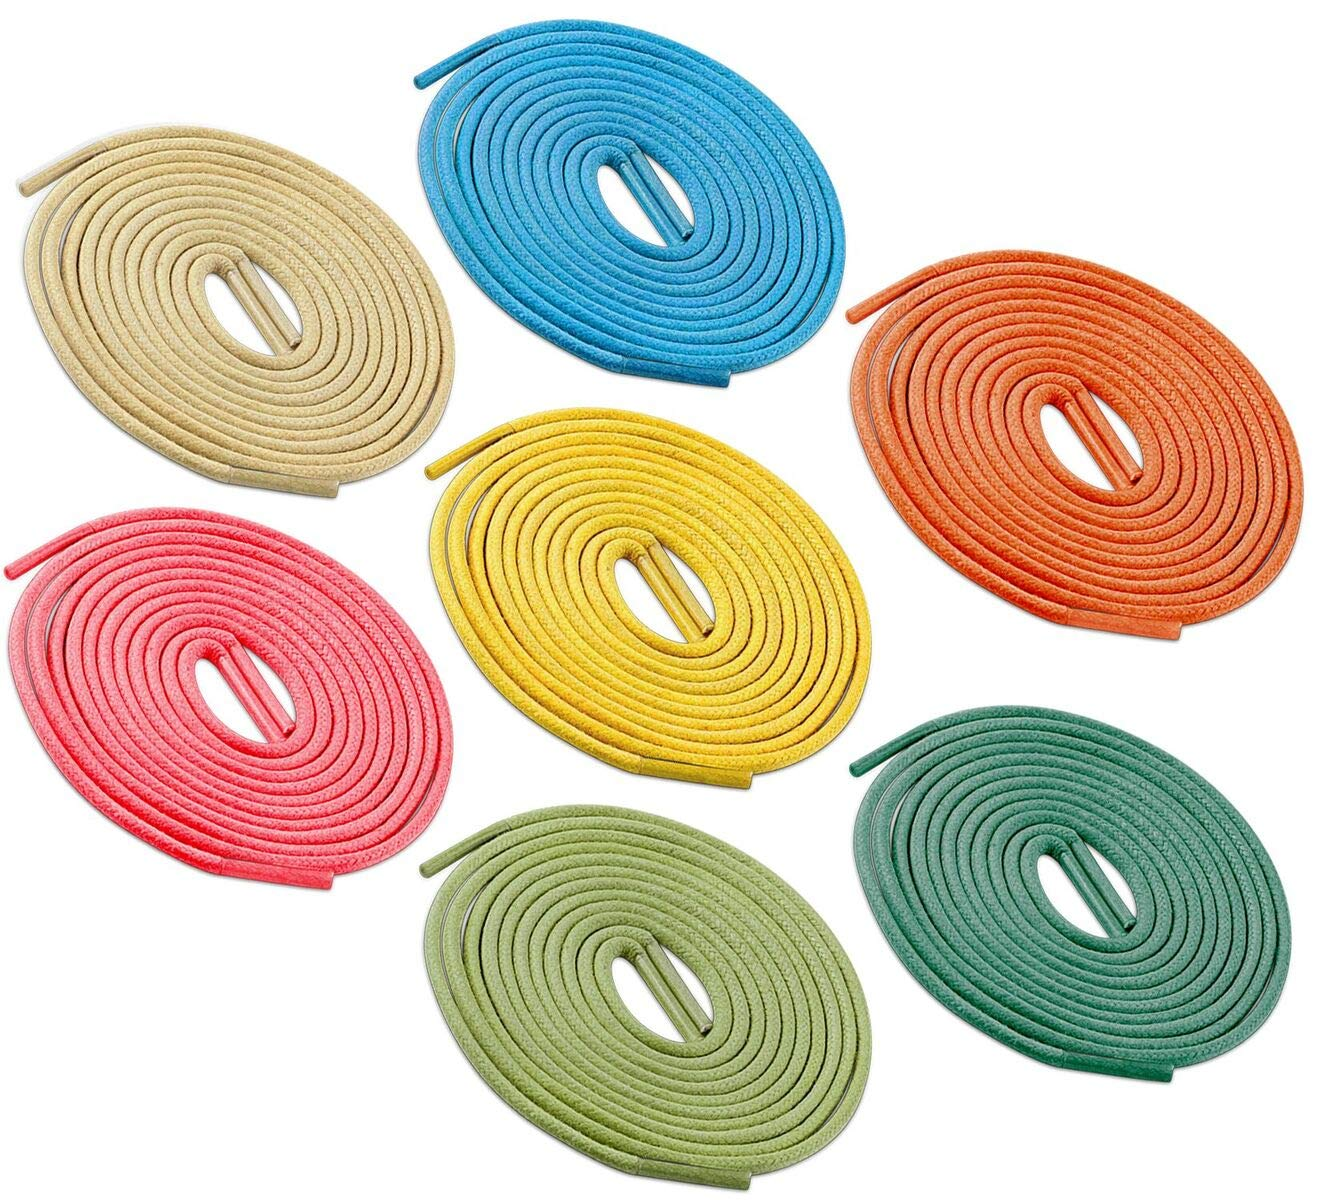 Brother Brother Colored Oxford Shoe Laces for Men (7 Pairs) | 100% Cotton Round and Waxed Shoelaces for Dress Shoes | Gift Box with Yellow, Orange, Turquoise, Apple Green, Green, Off White and Pink